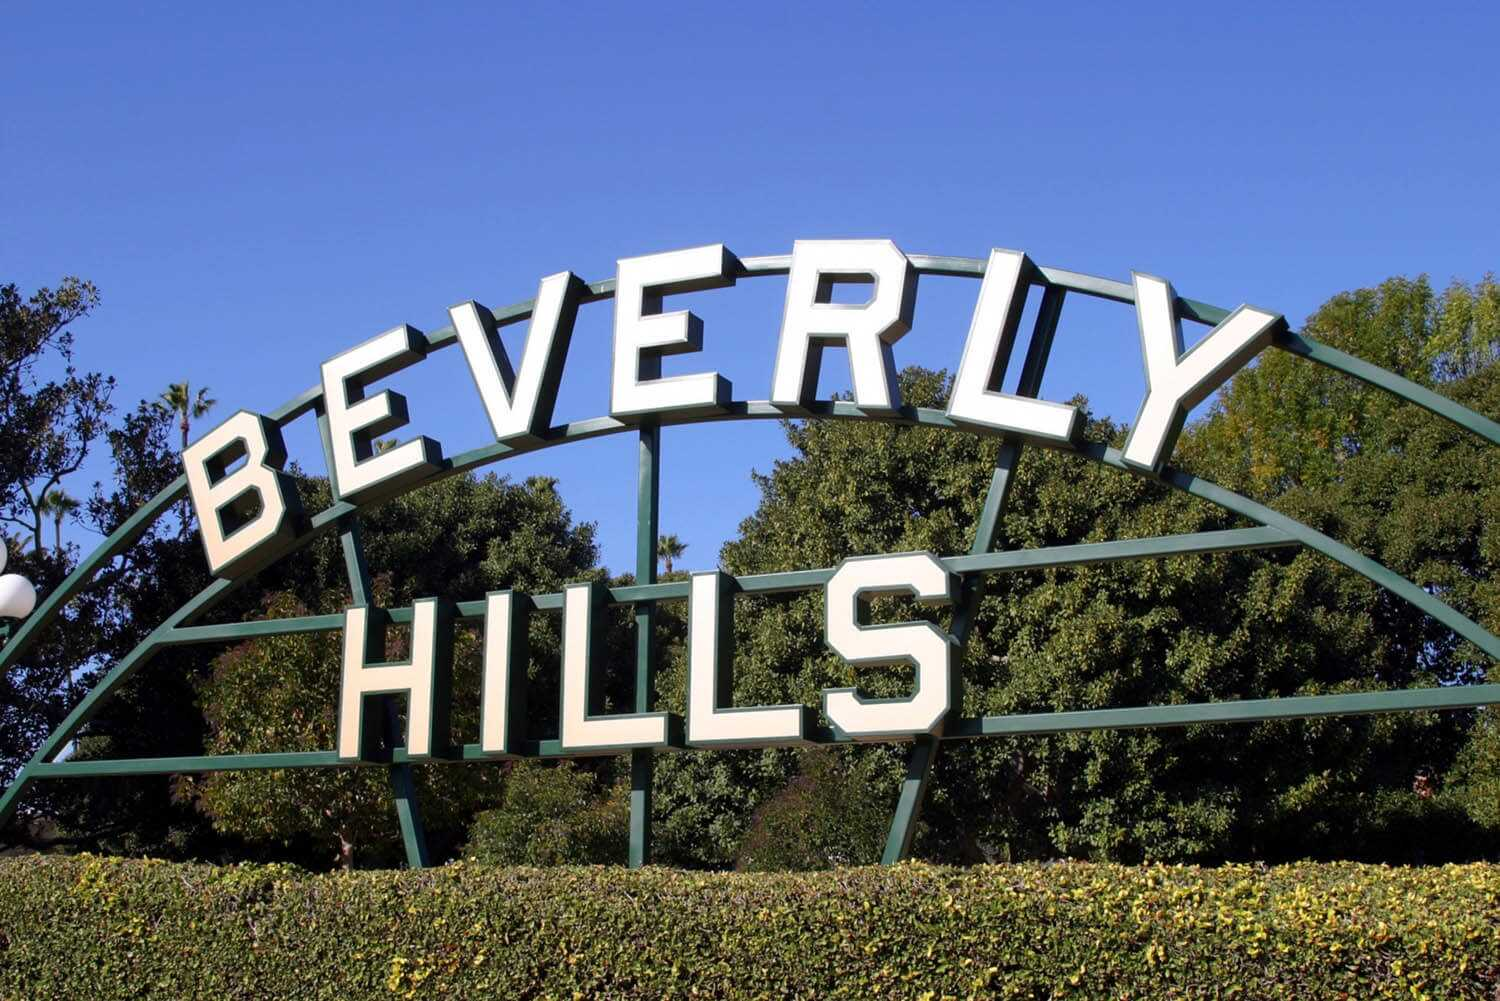 006-beverlyhills_plus